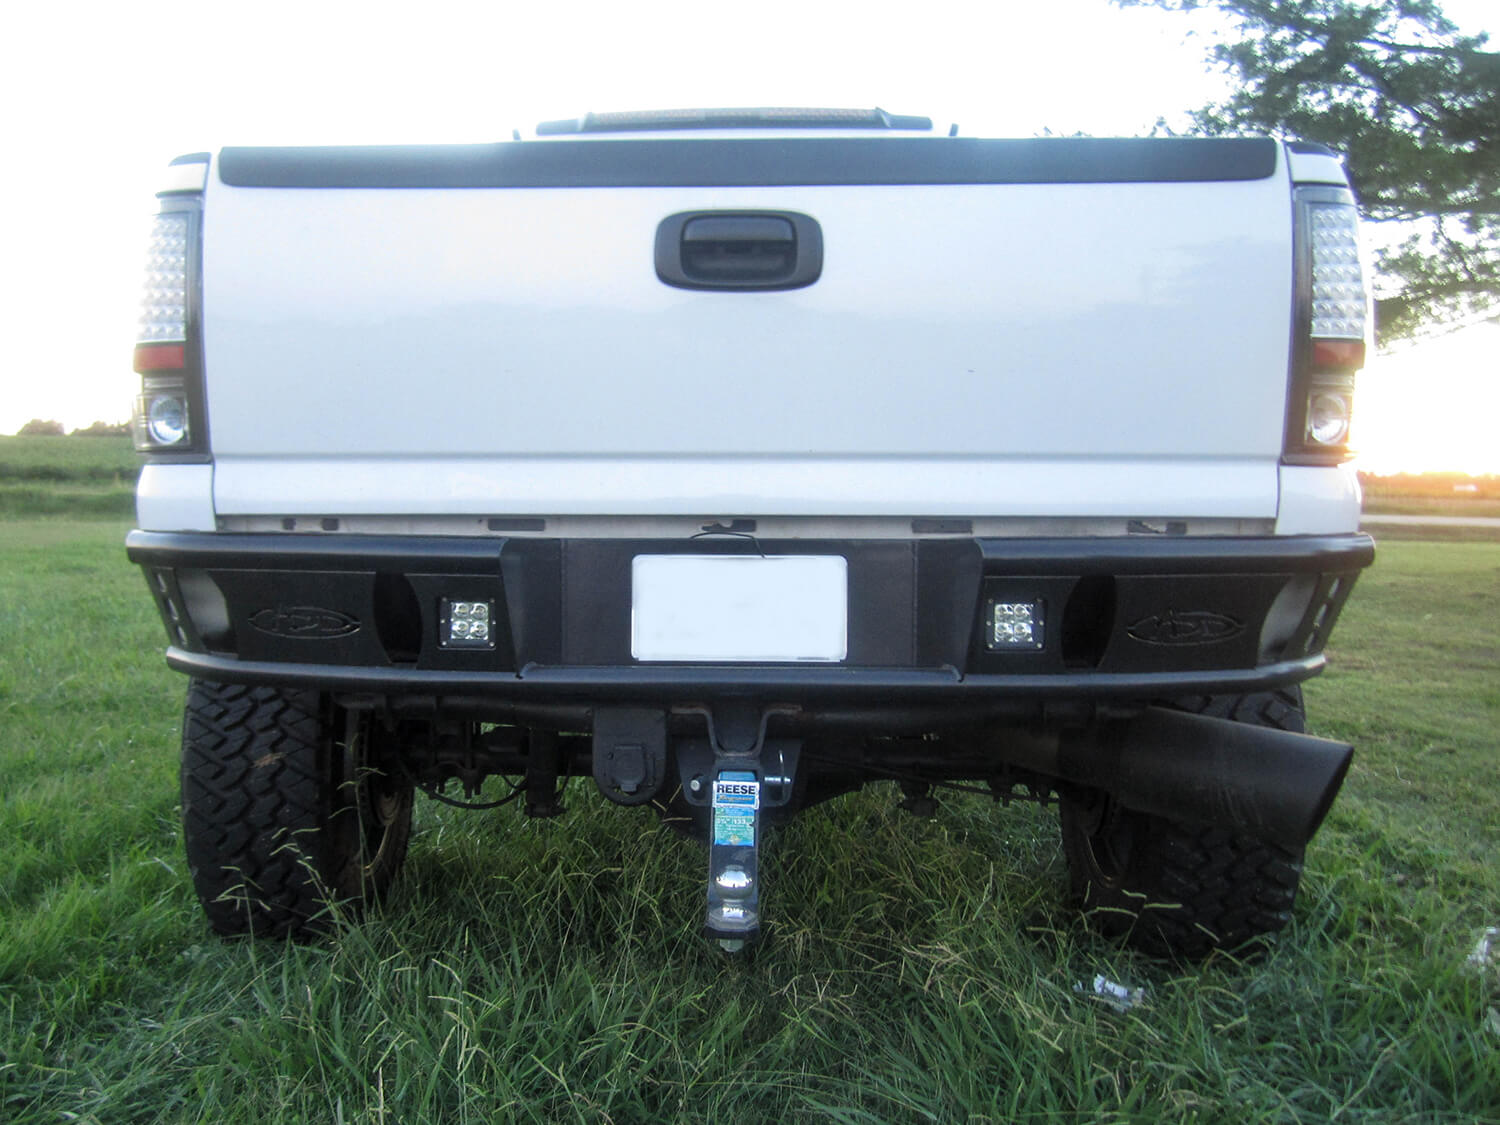 Addictive Desert Design Dimple R Rear Bumper Chevrolet Silverado 2500 99-07